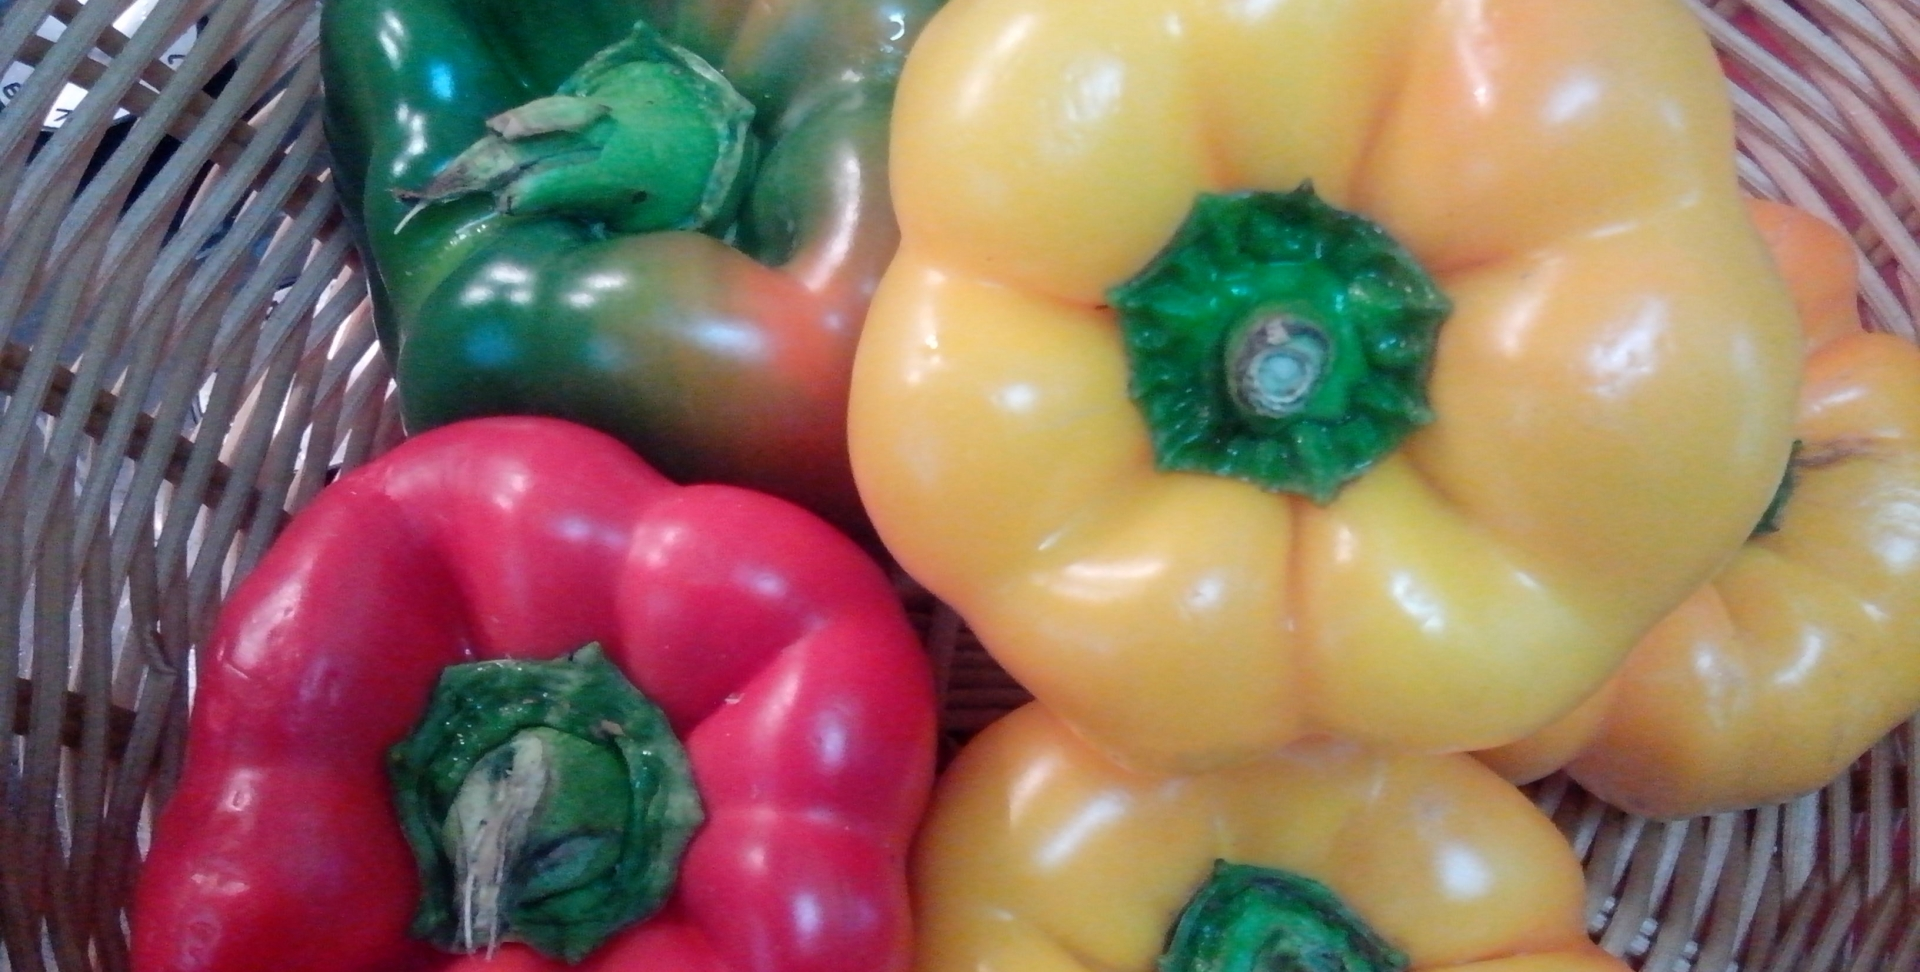 Coloured capsicums